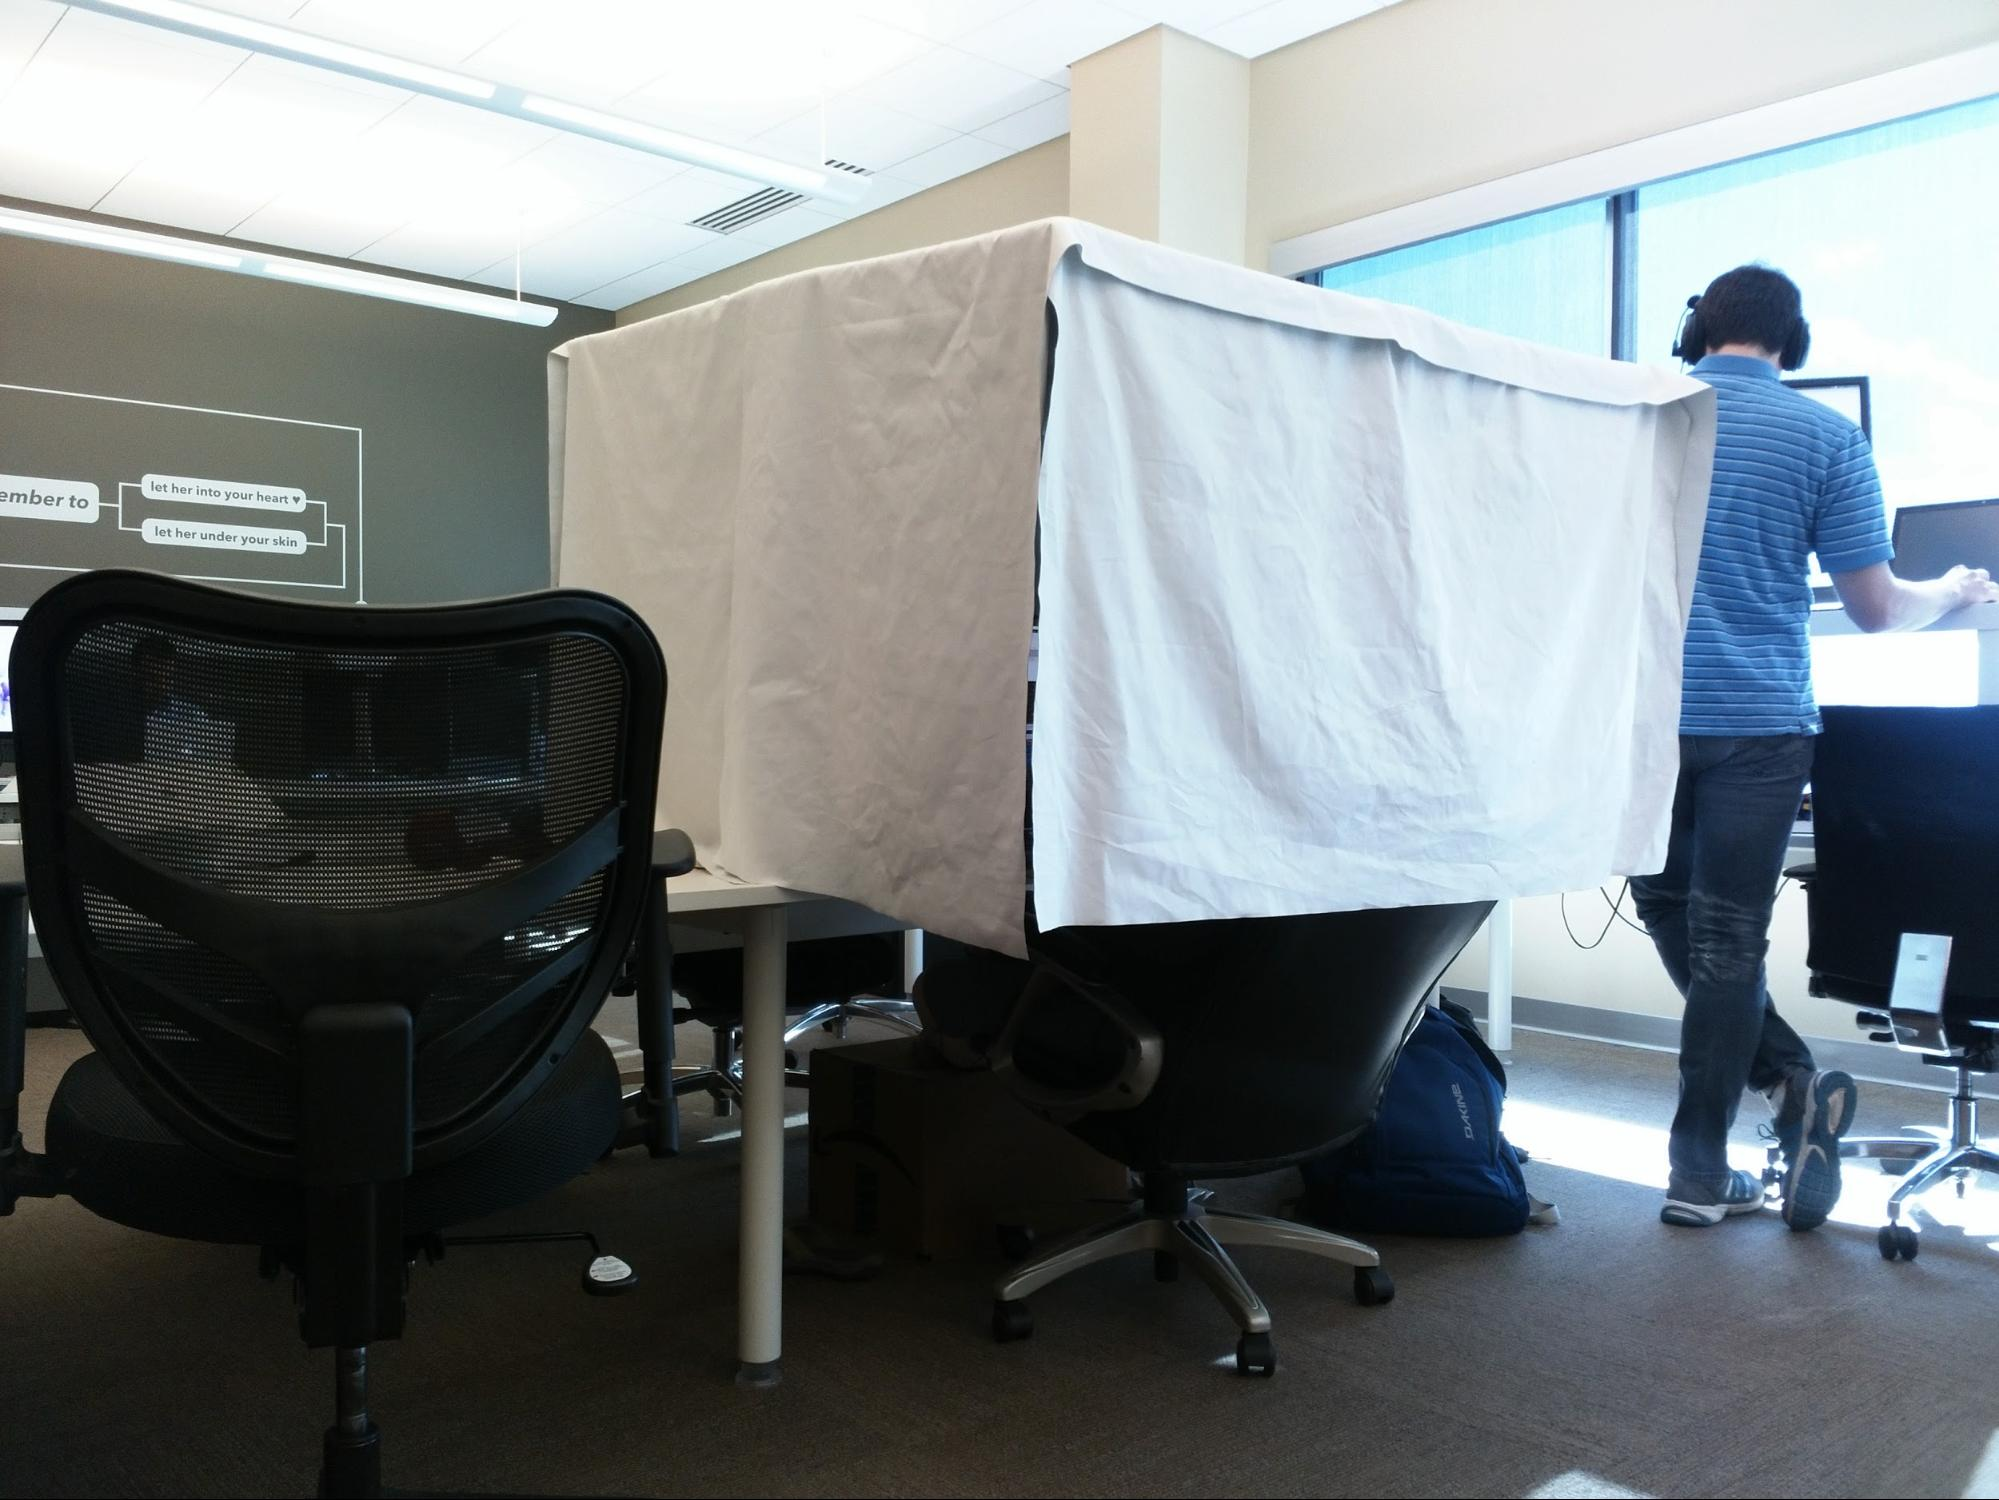 A cloth tent built around a workplace.